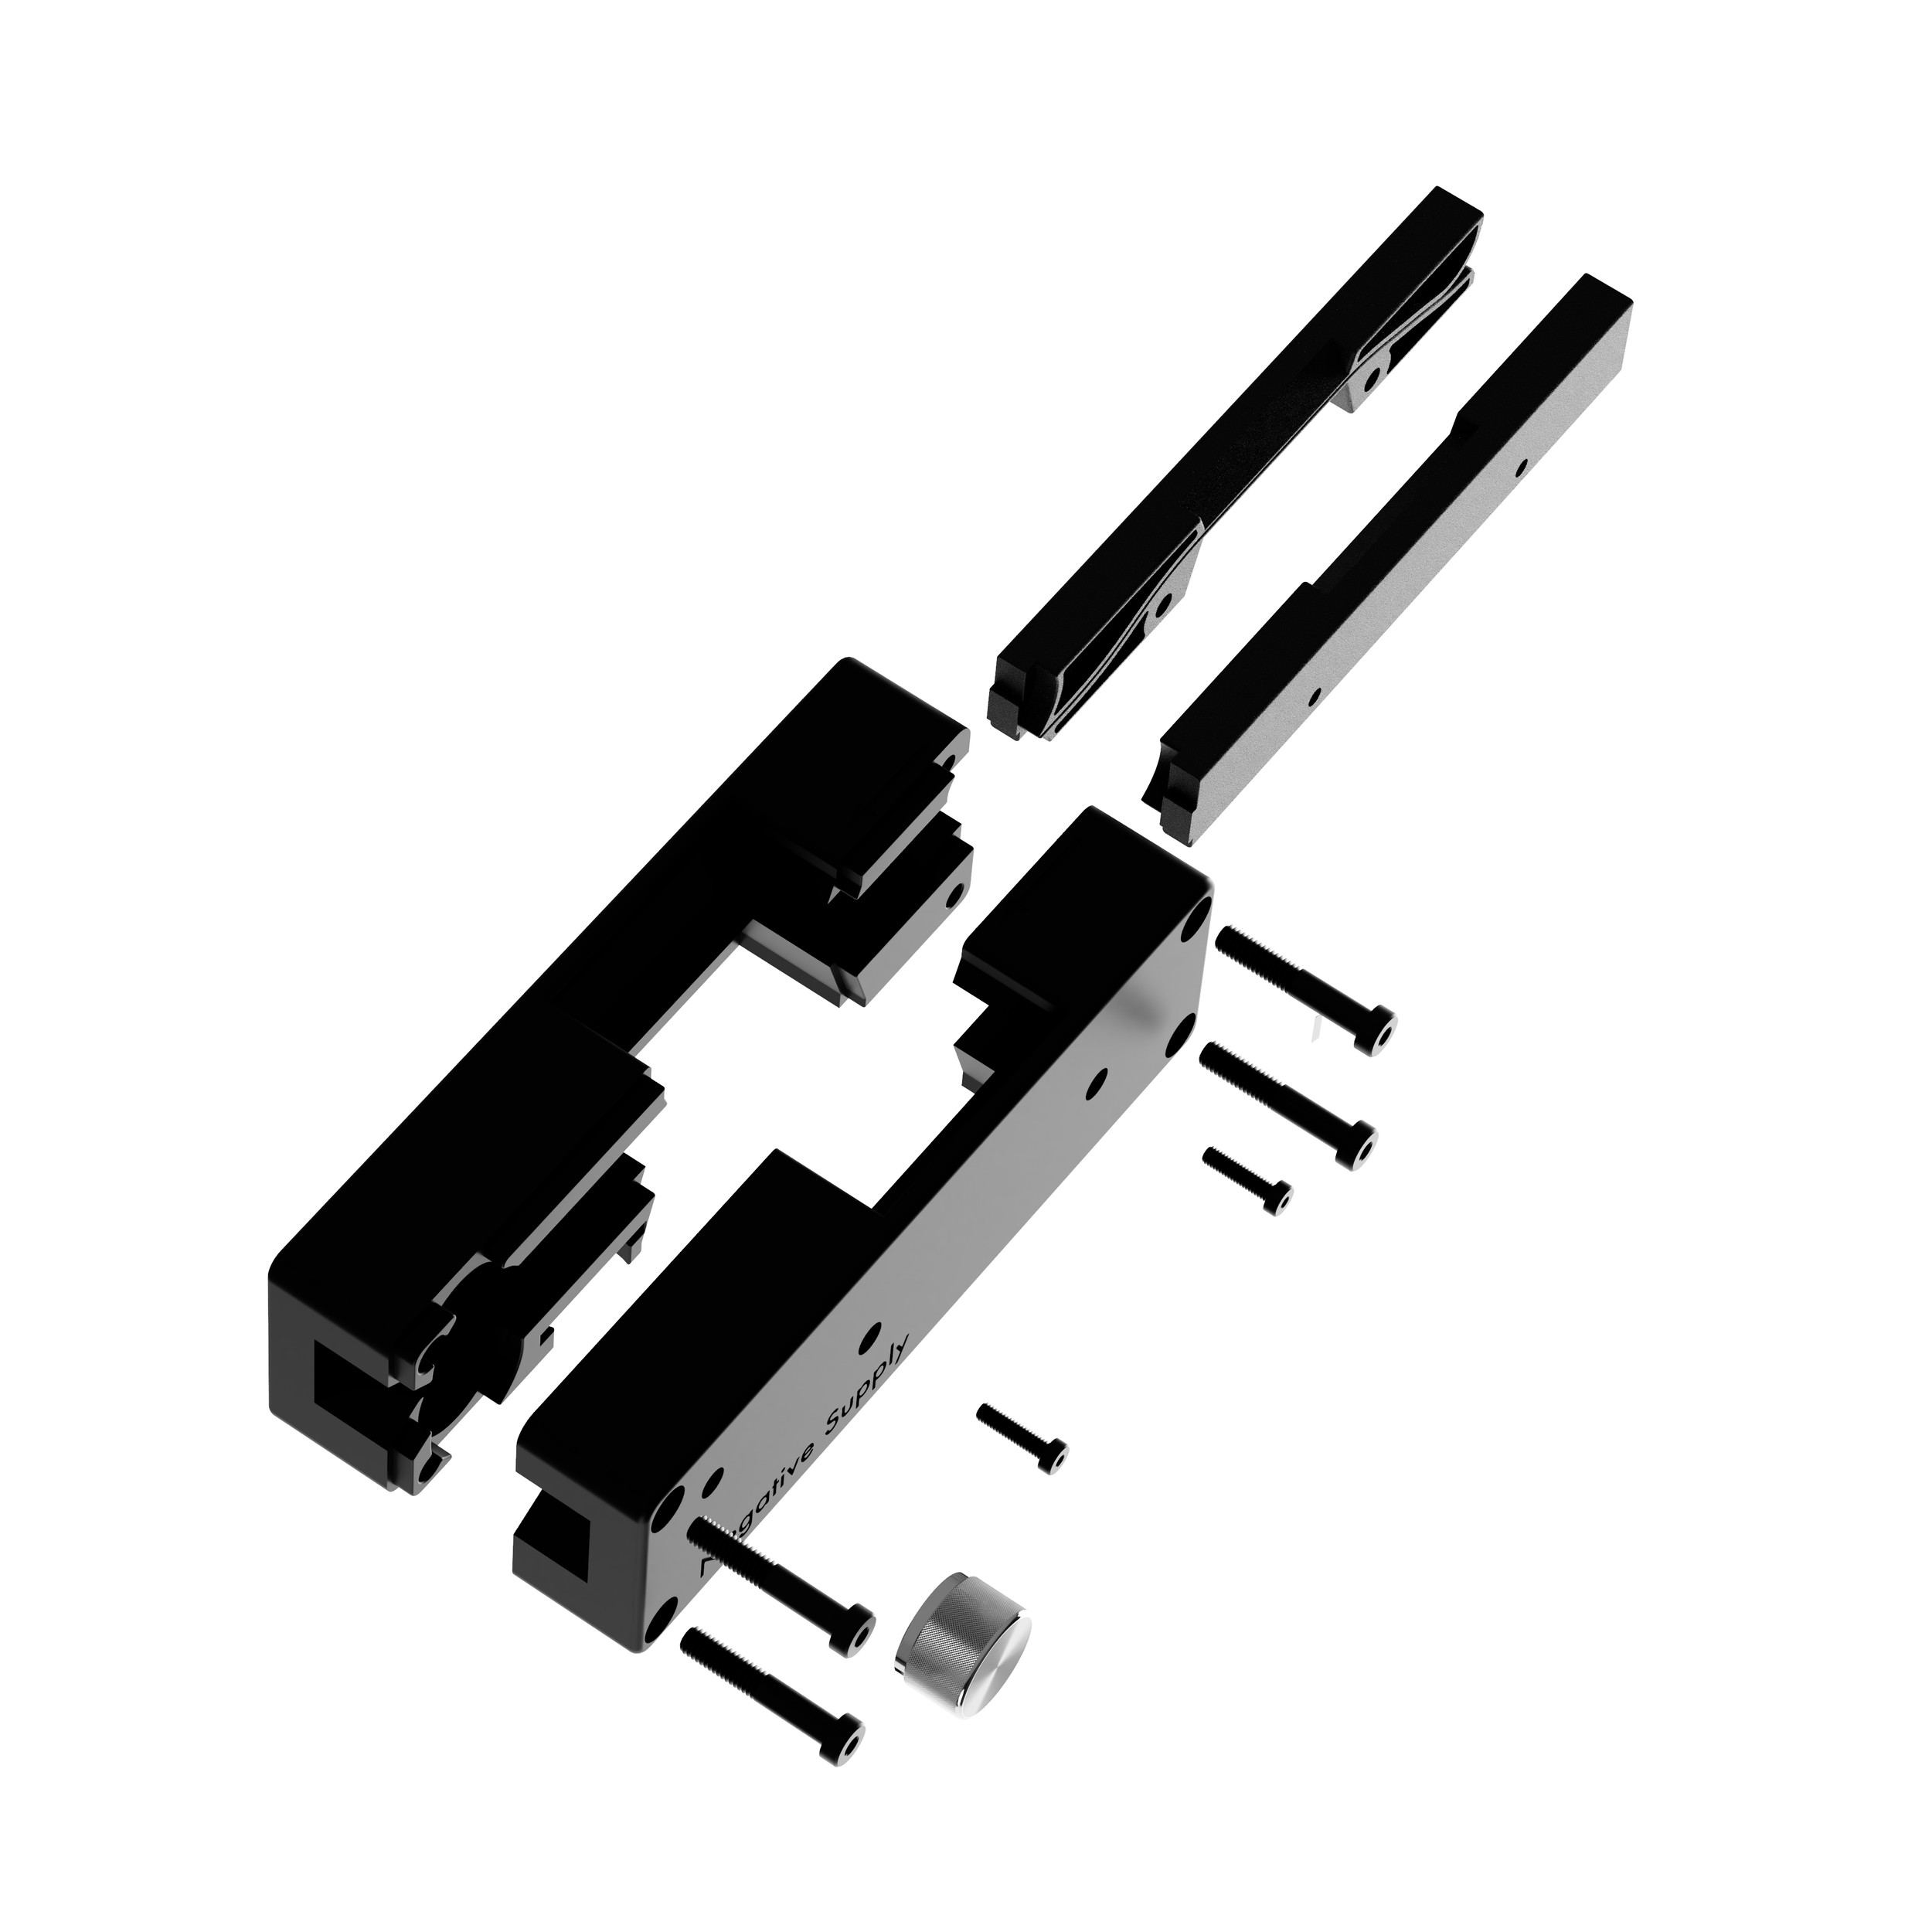 Film Carrier MK1 partially disassembled, shown with customized hardware and in CNC machined construction.